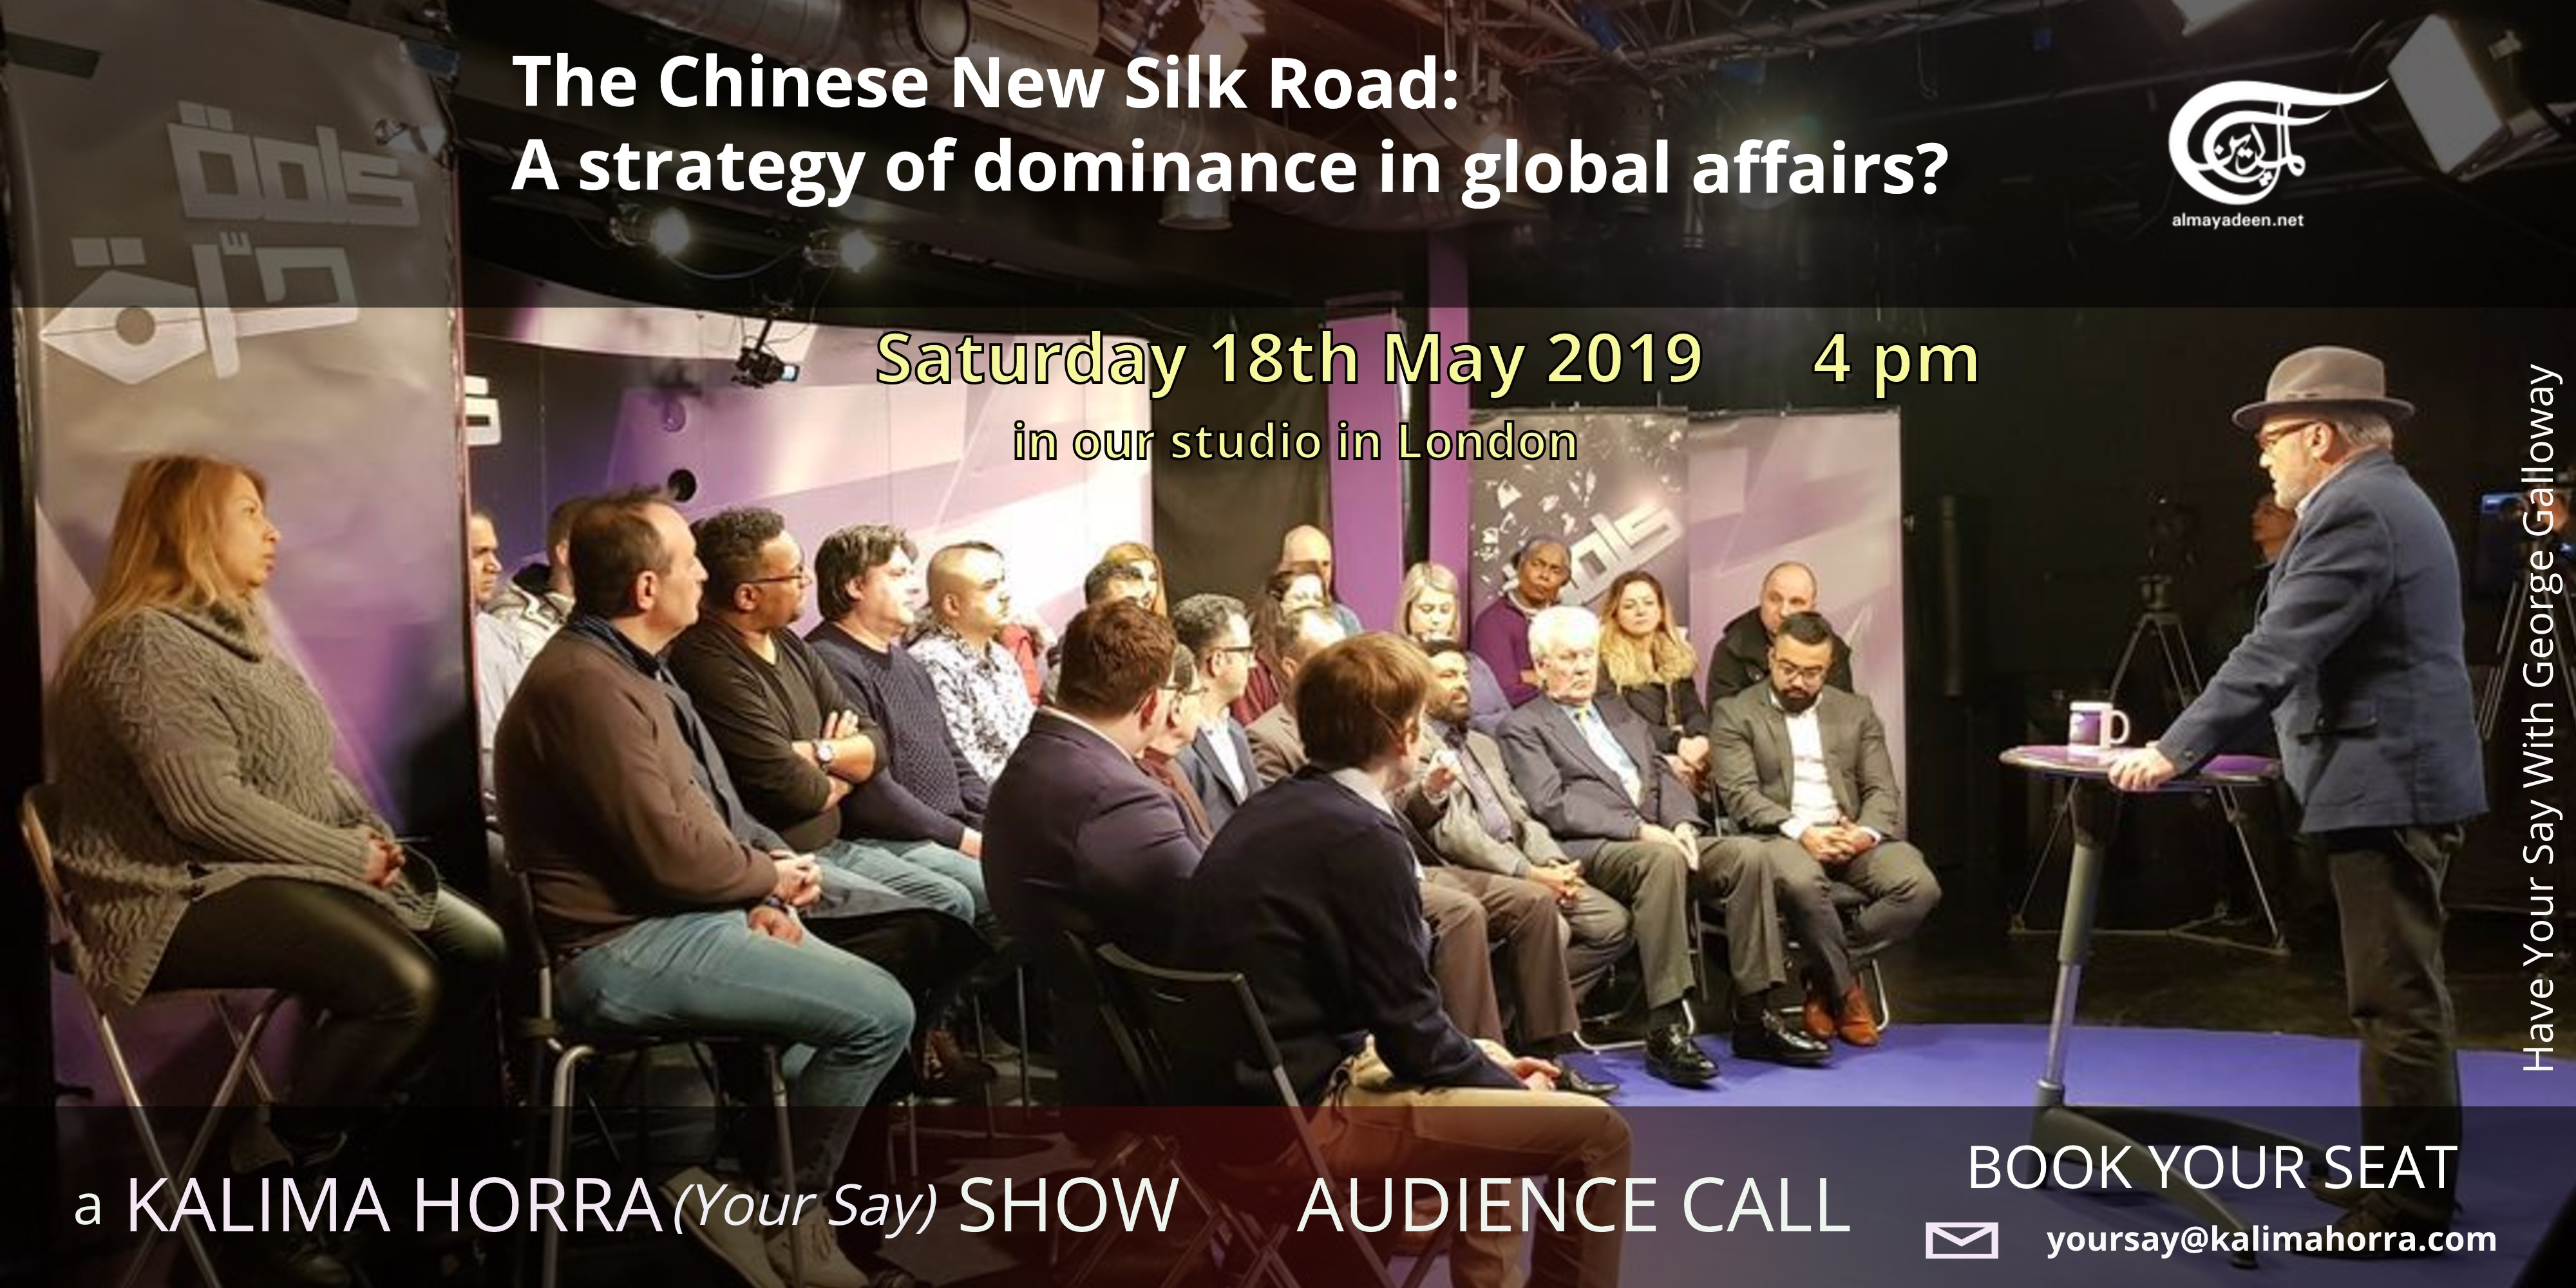 .. Audience Call .. suggest topics